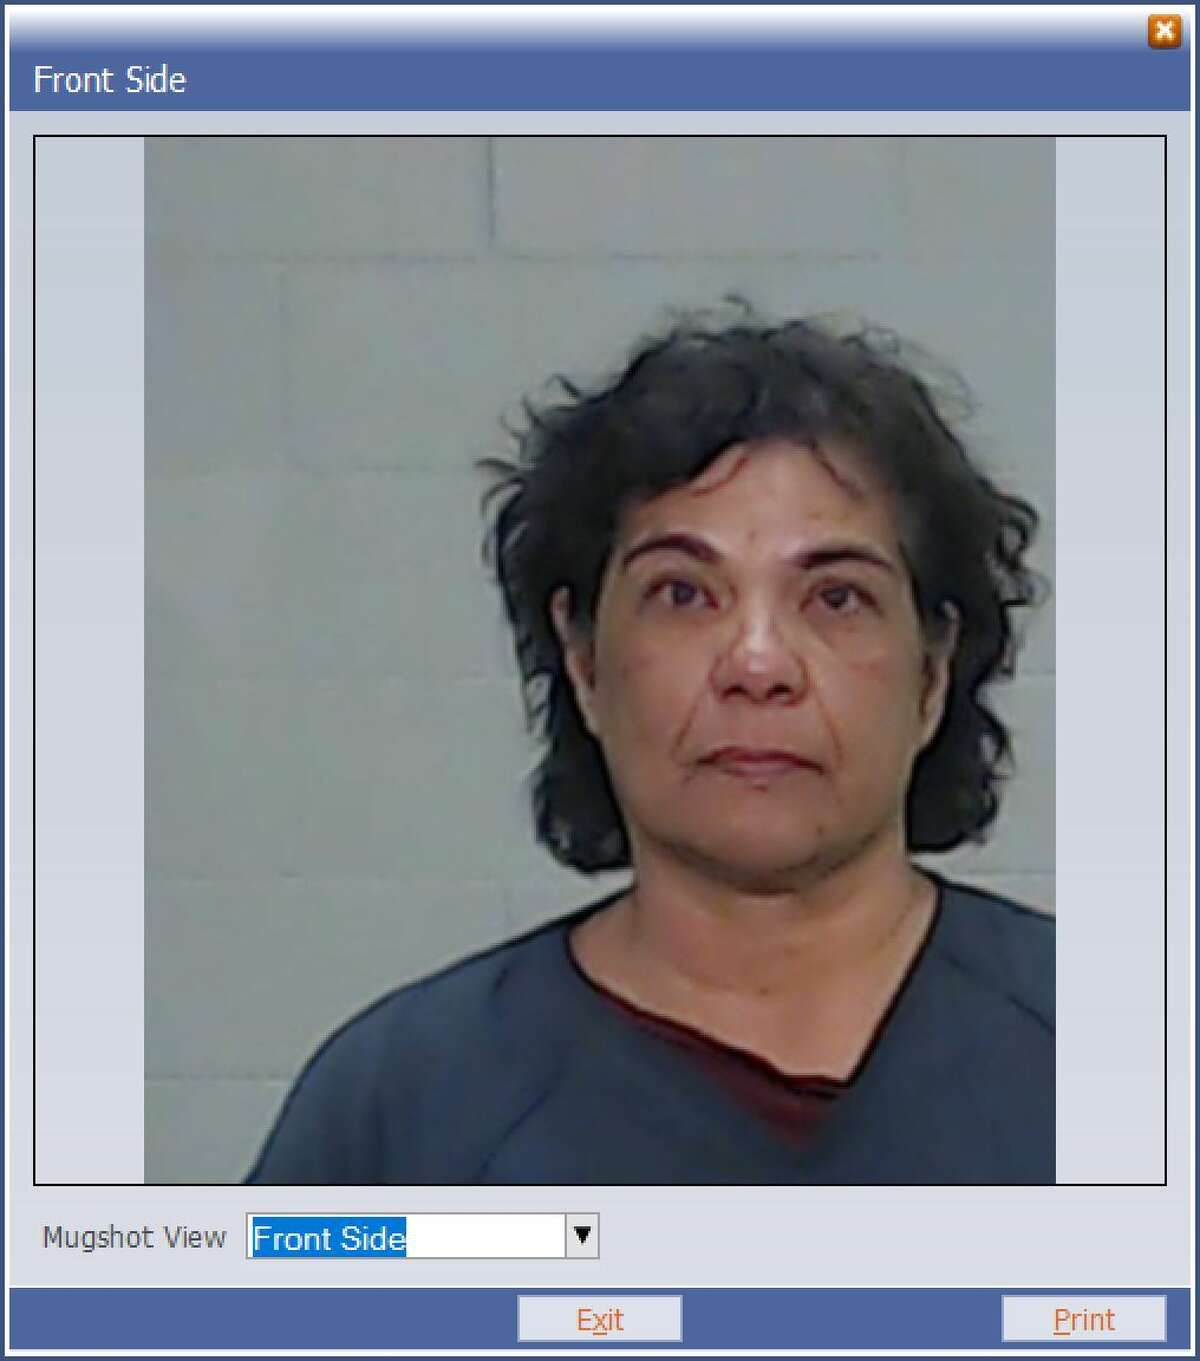 Linda Voss, the former principal at Travis Elementary in Odessa, was arrested after she was accused of failing to report a student who made an outcry about a substitute teacher in January, according to local broadcast station KOSA-TV. The student accused the substitute of sexual abuse, according to news reports.